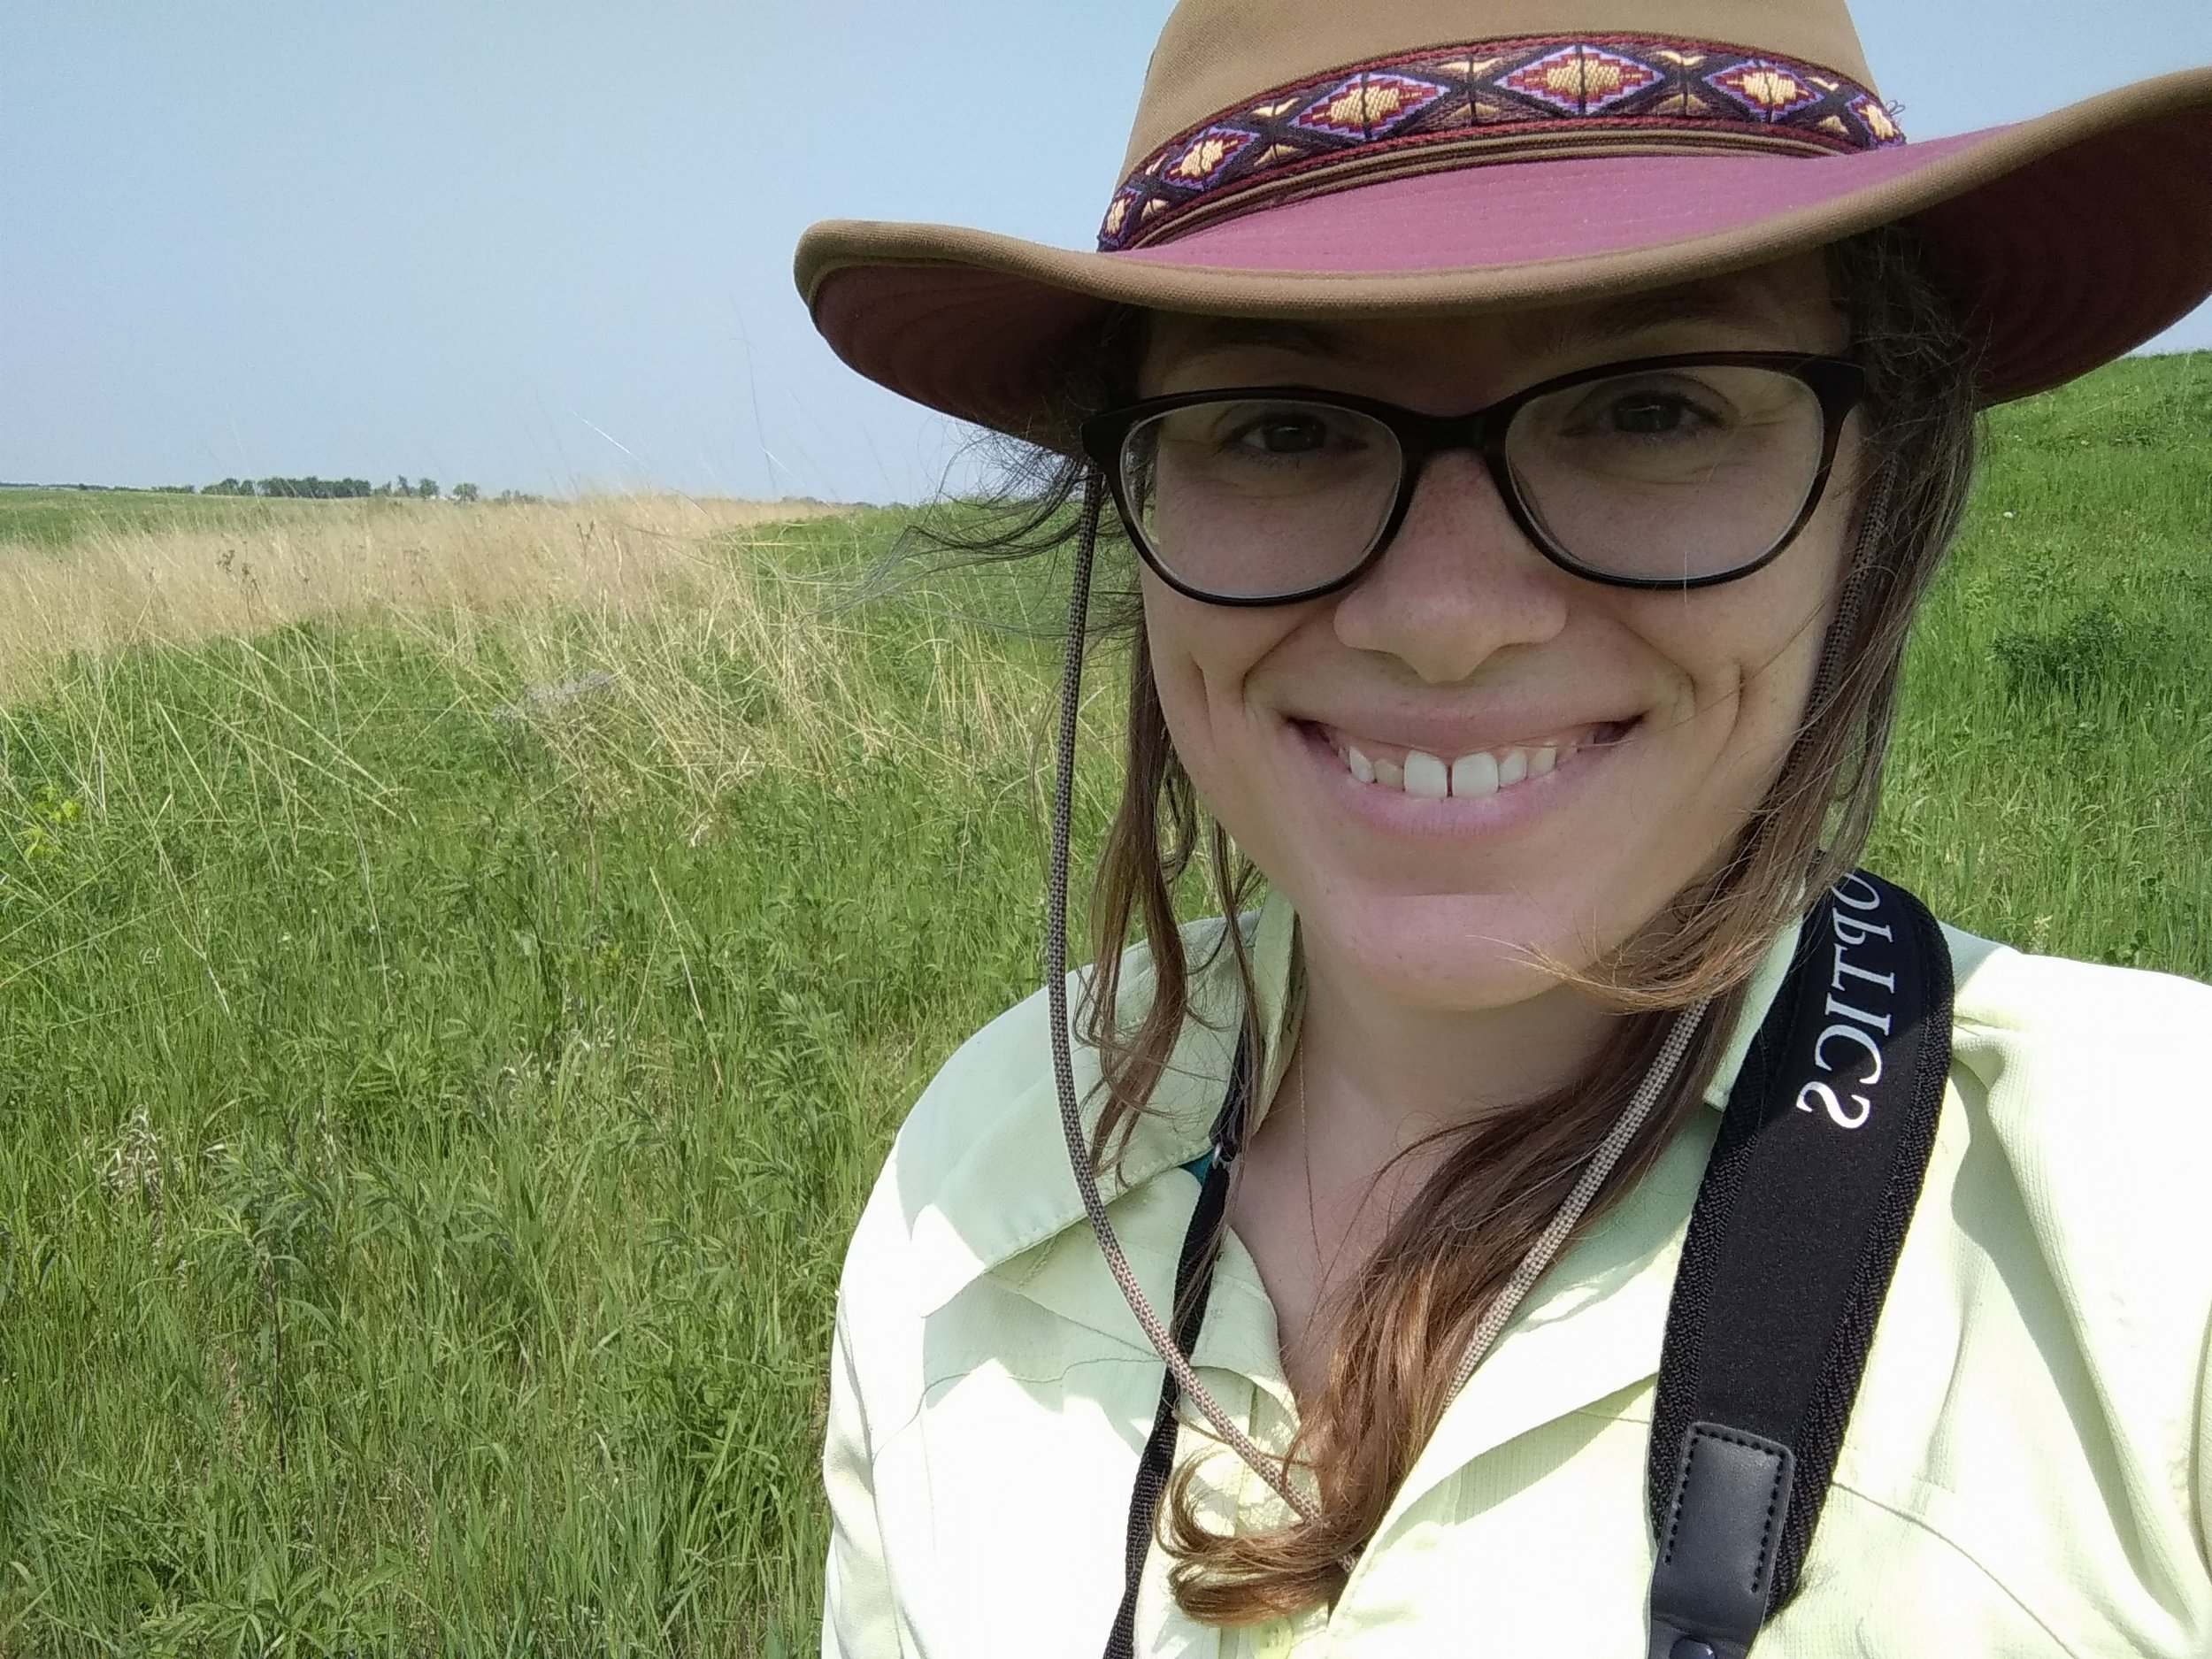 Here I am in my natural habitat: Wisconsin grassland.